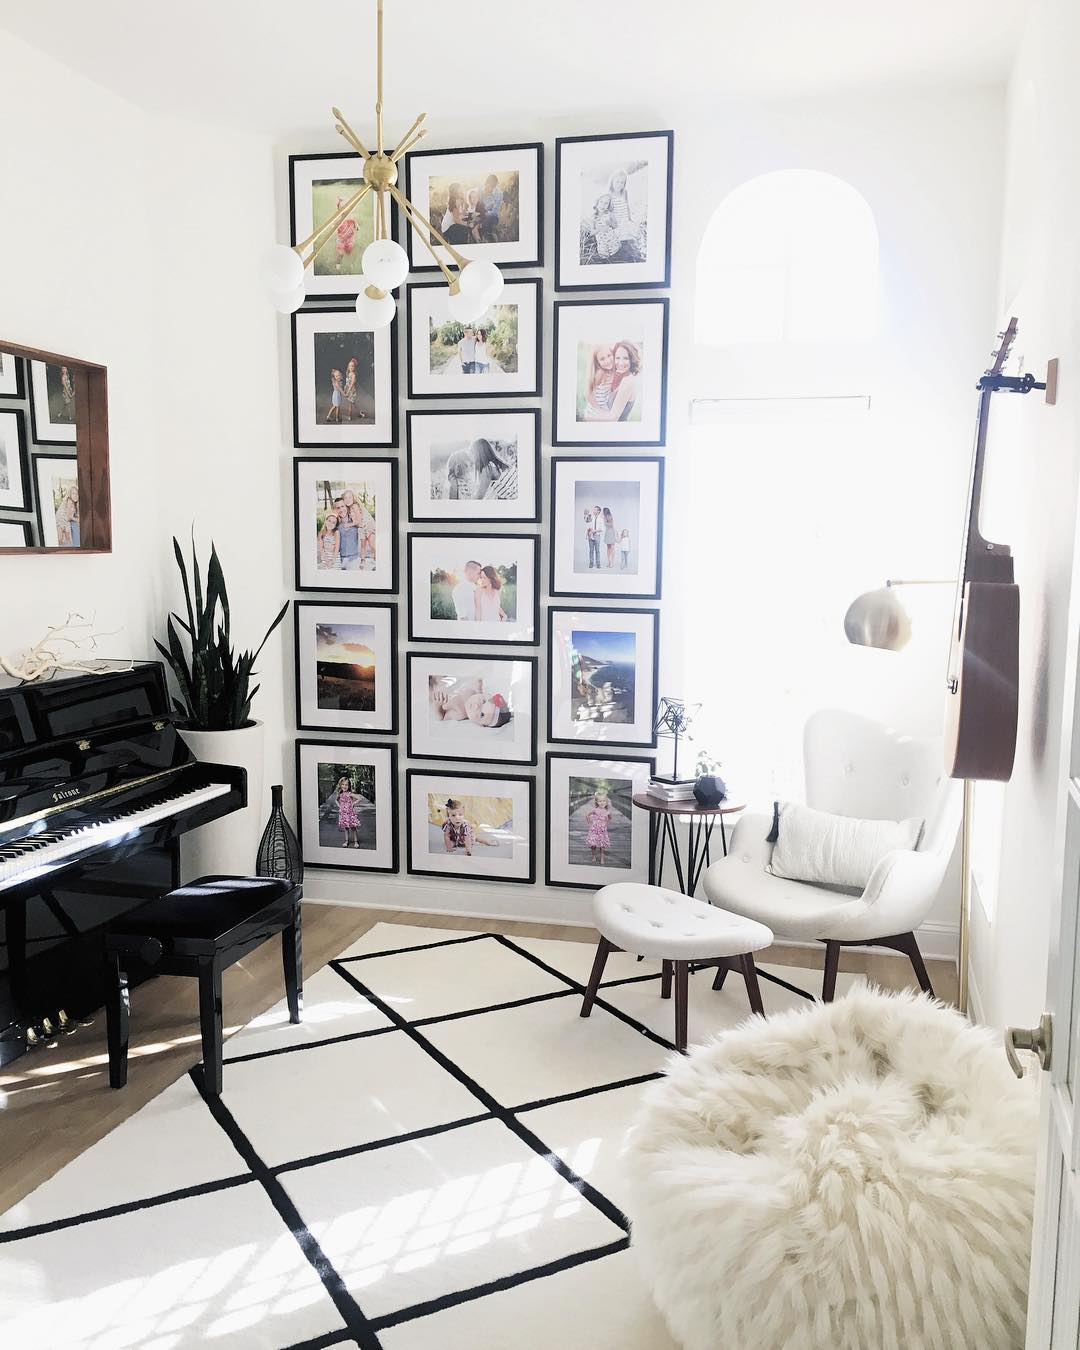 gallery wall of family photos in black frames in living room with piano and bean bag chairs